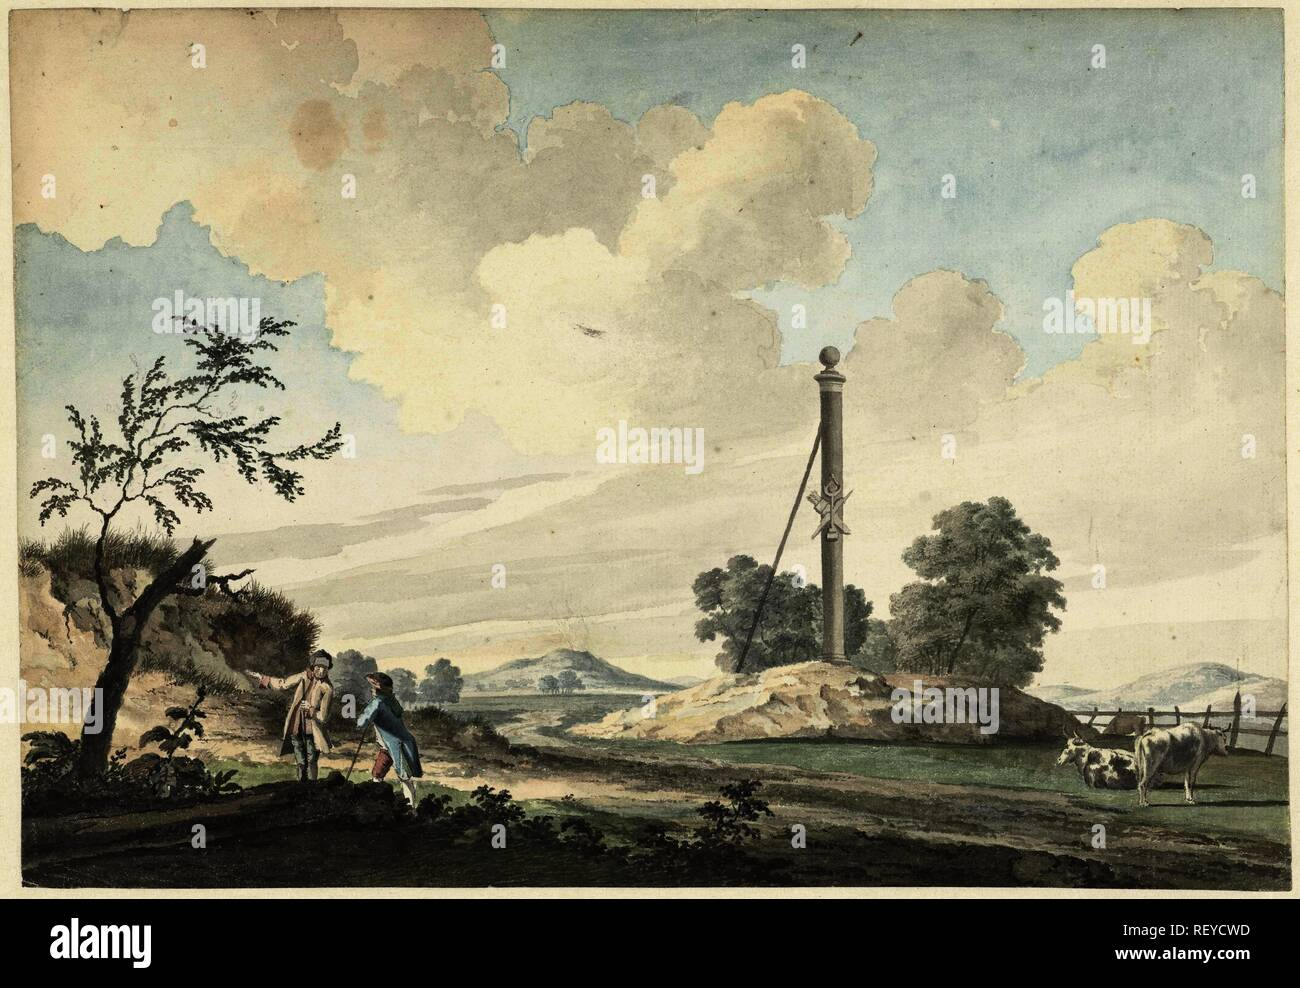 Landscape near the dunes with a milestone and two walkers. Draughtsman: Gerrit Toorenburgh. Dating: 1765. Measurements: h 237 mm × w 340 mm. Museum: Rijksmuseum, Amsterdam. Stock Photo